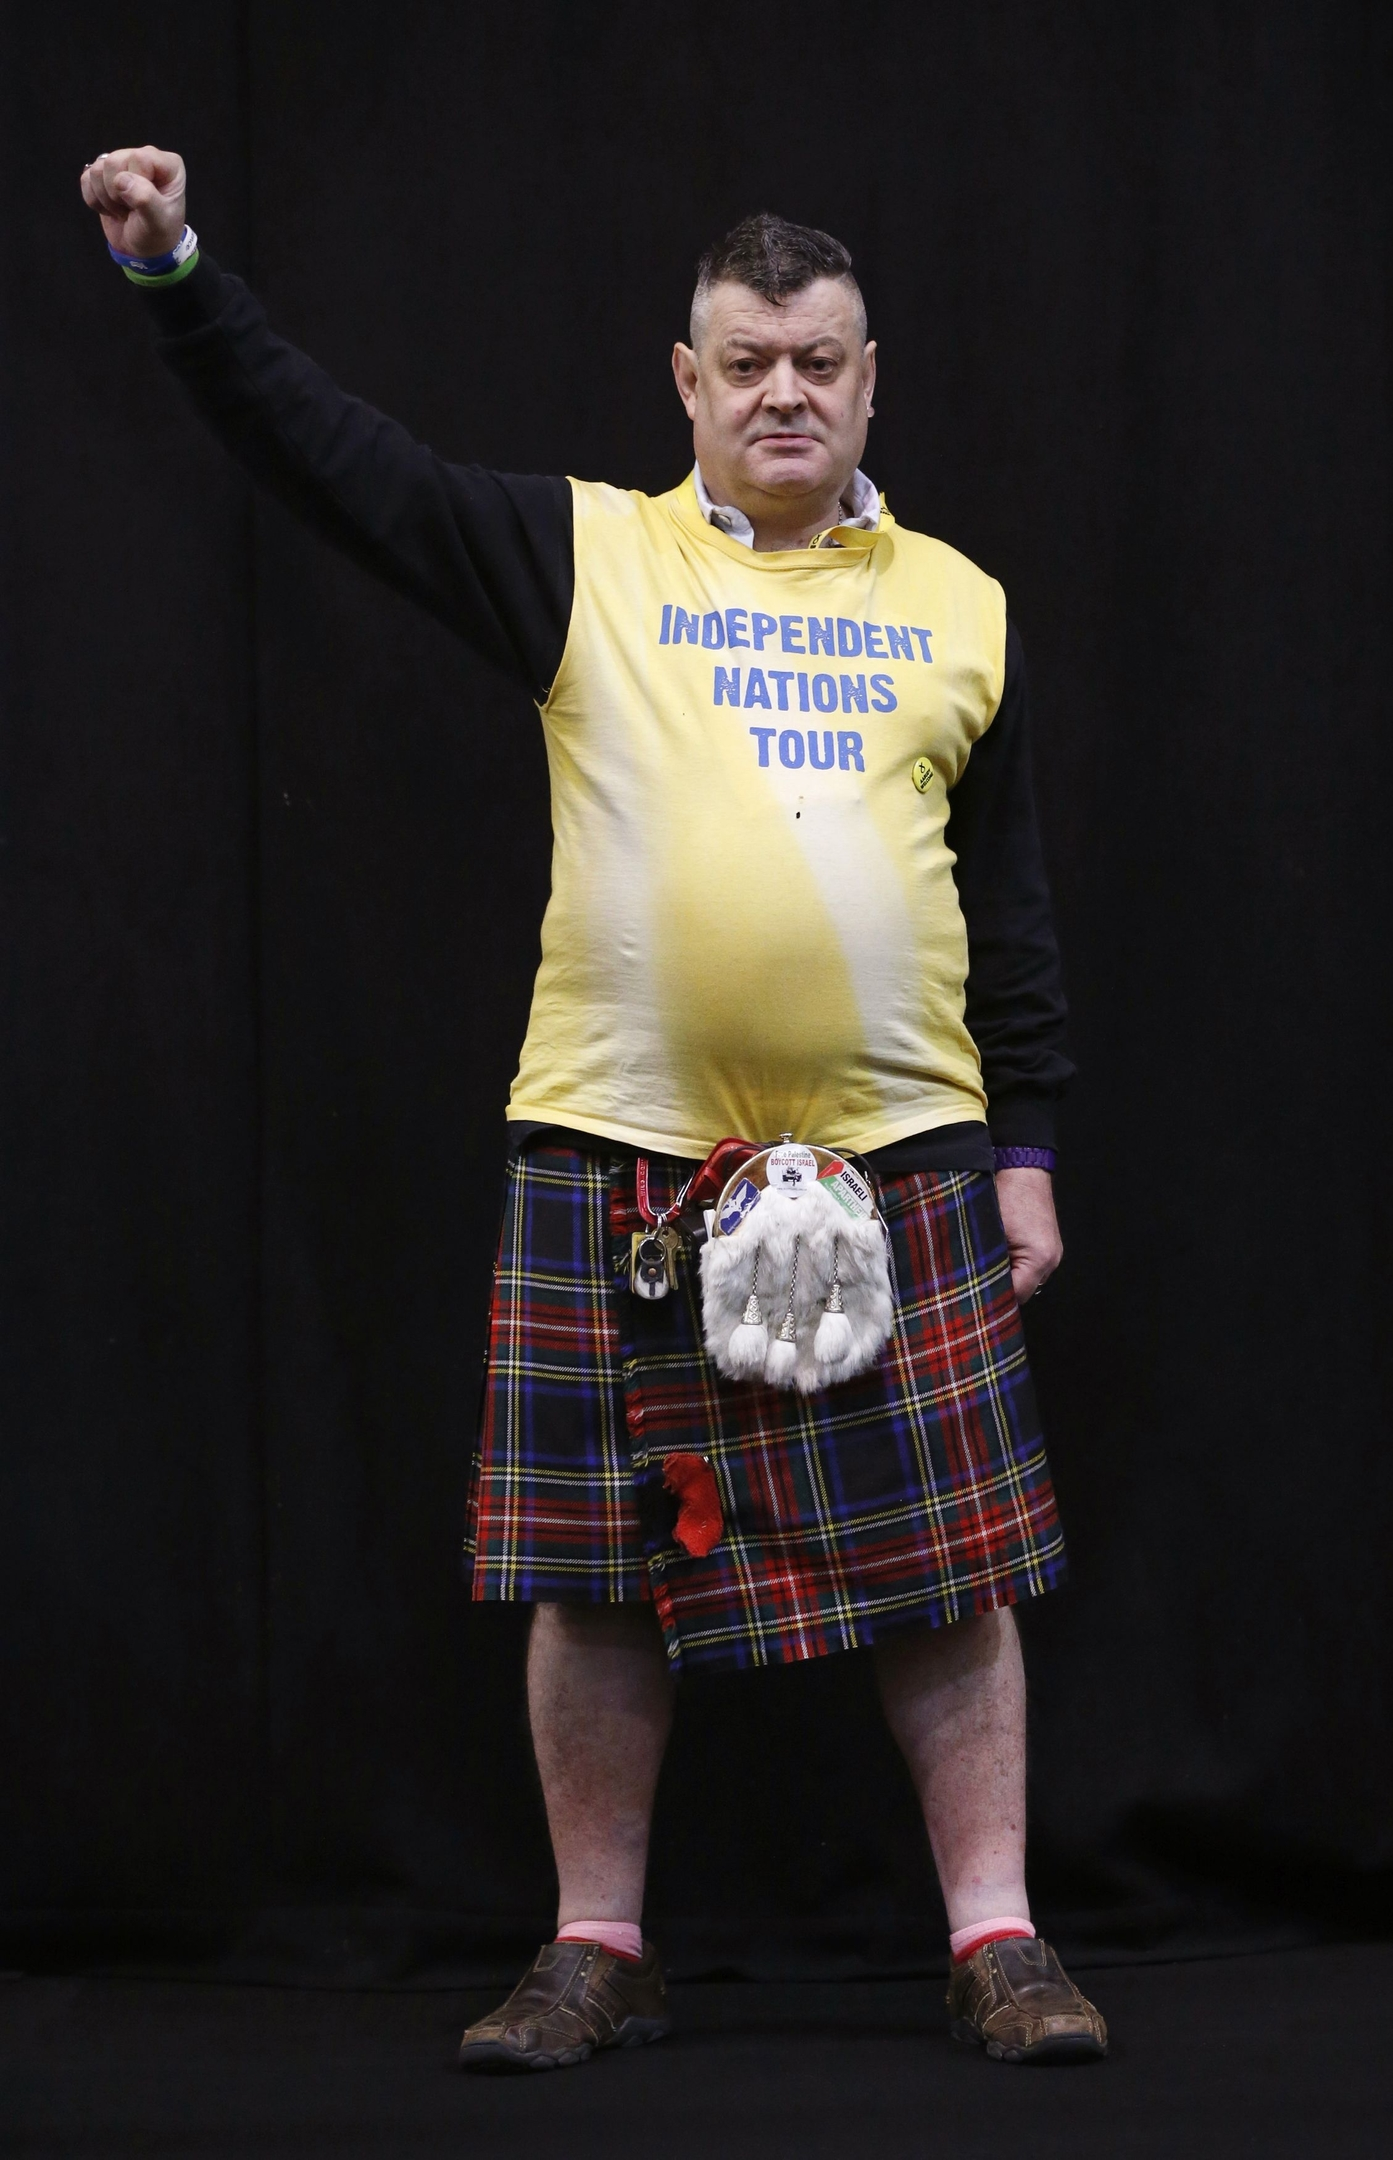 SNP supporter Steve Davie poses for a photograph